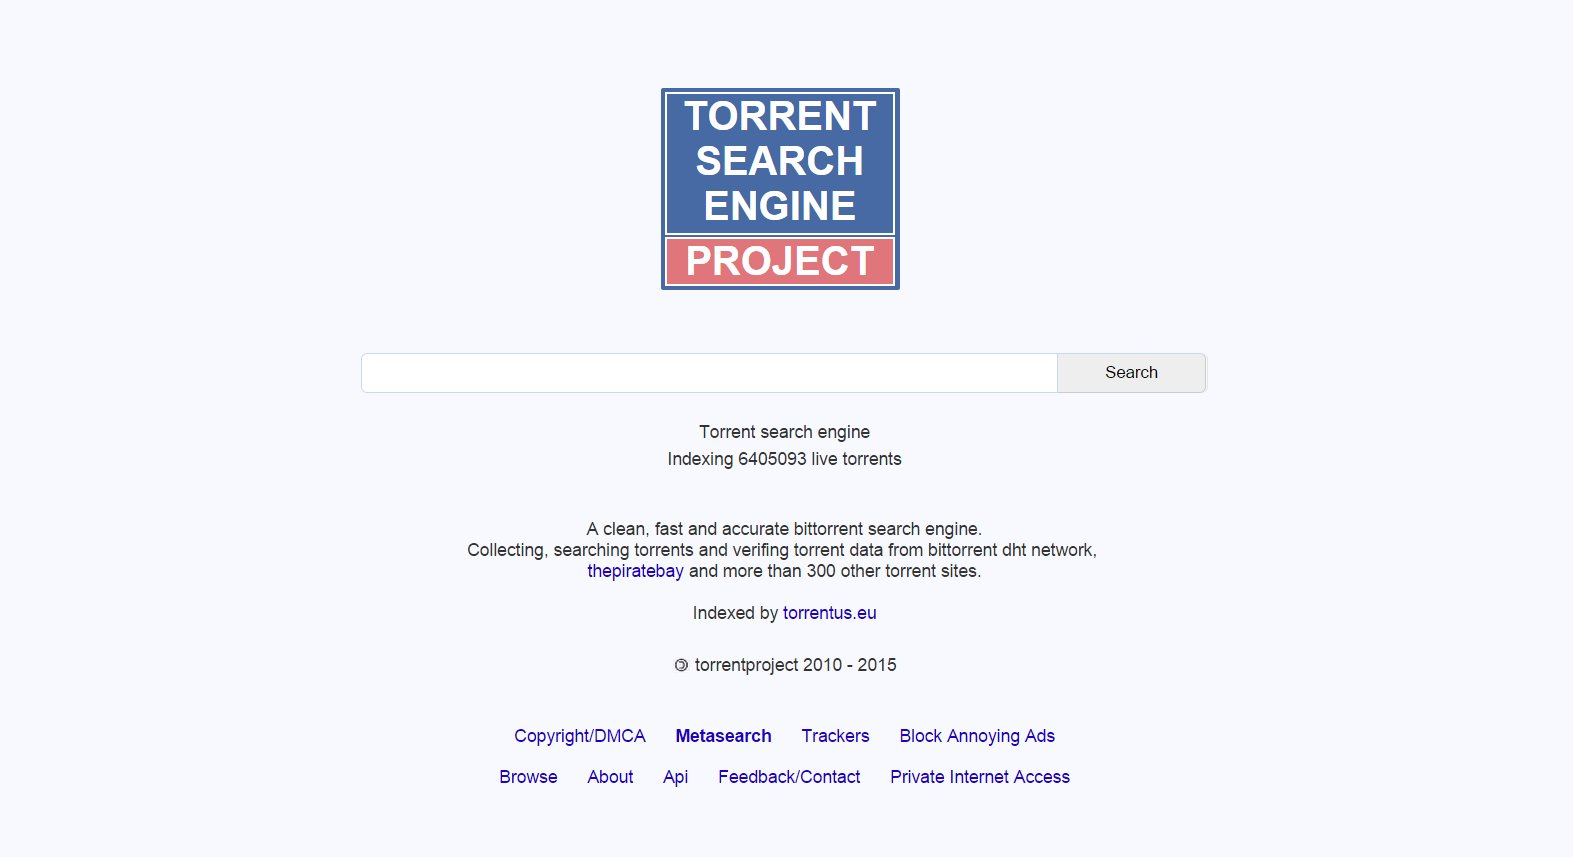 TorrentProject.se